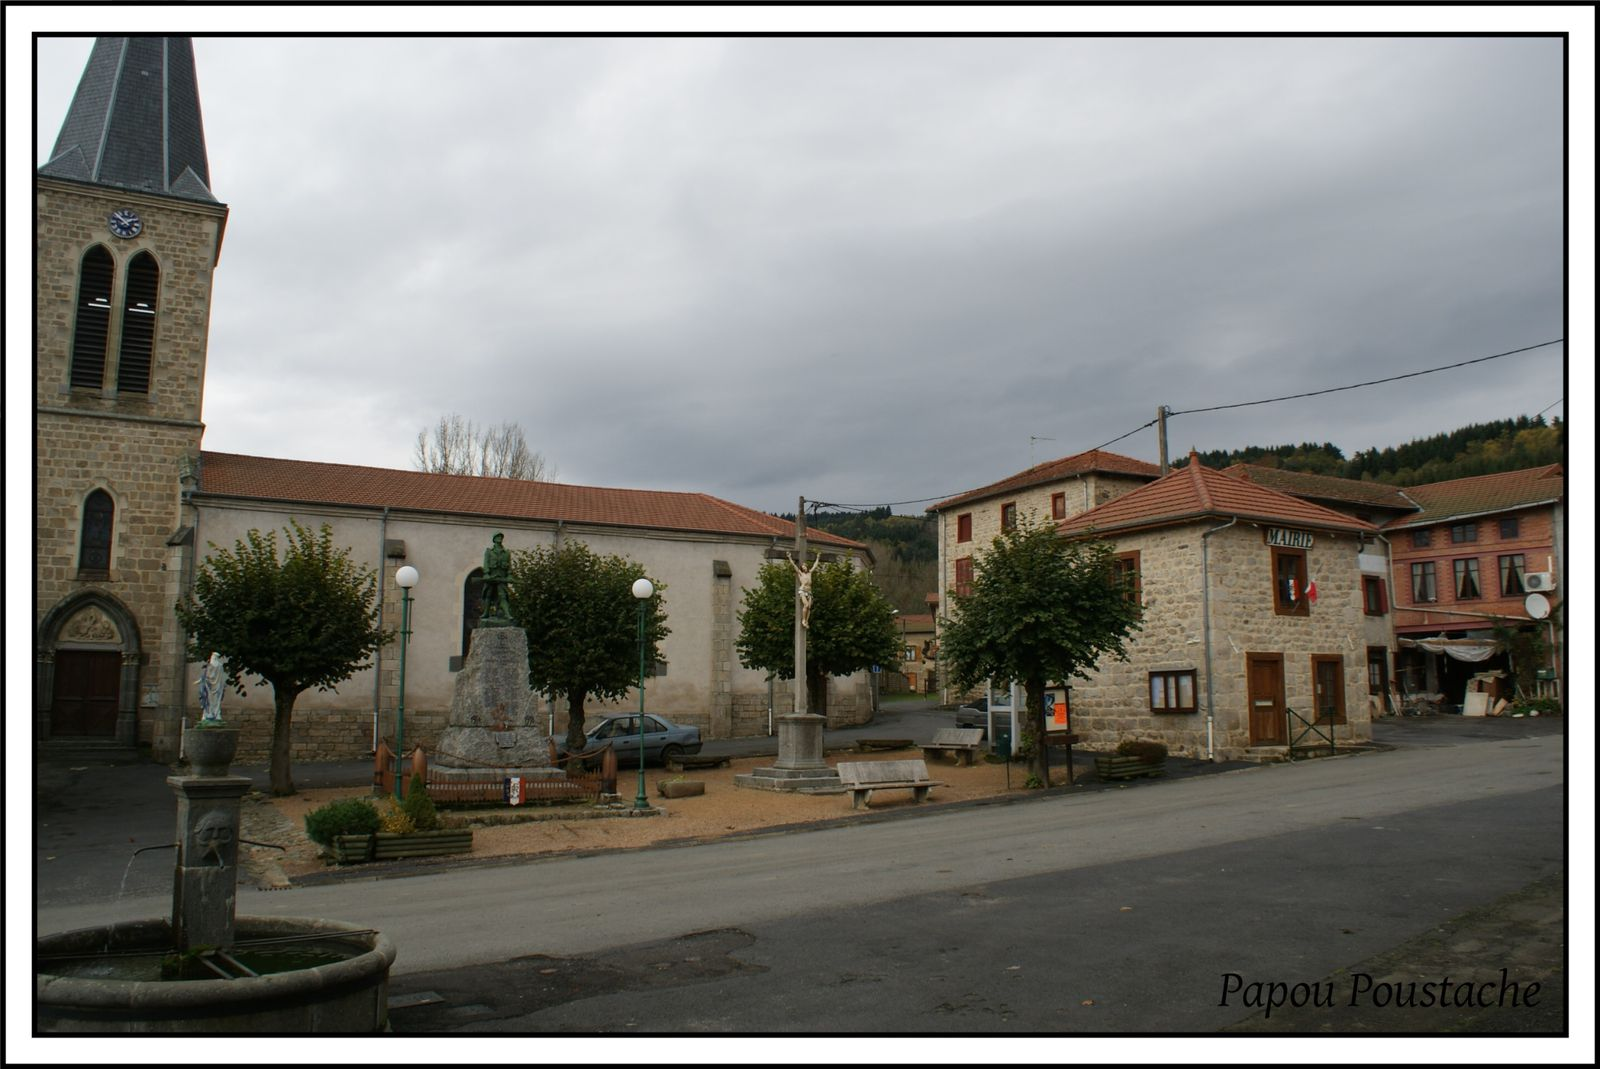 Les villages du Puy de Dome: Grandrif